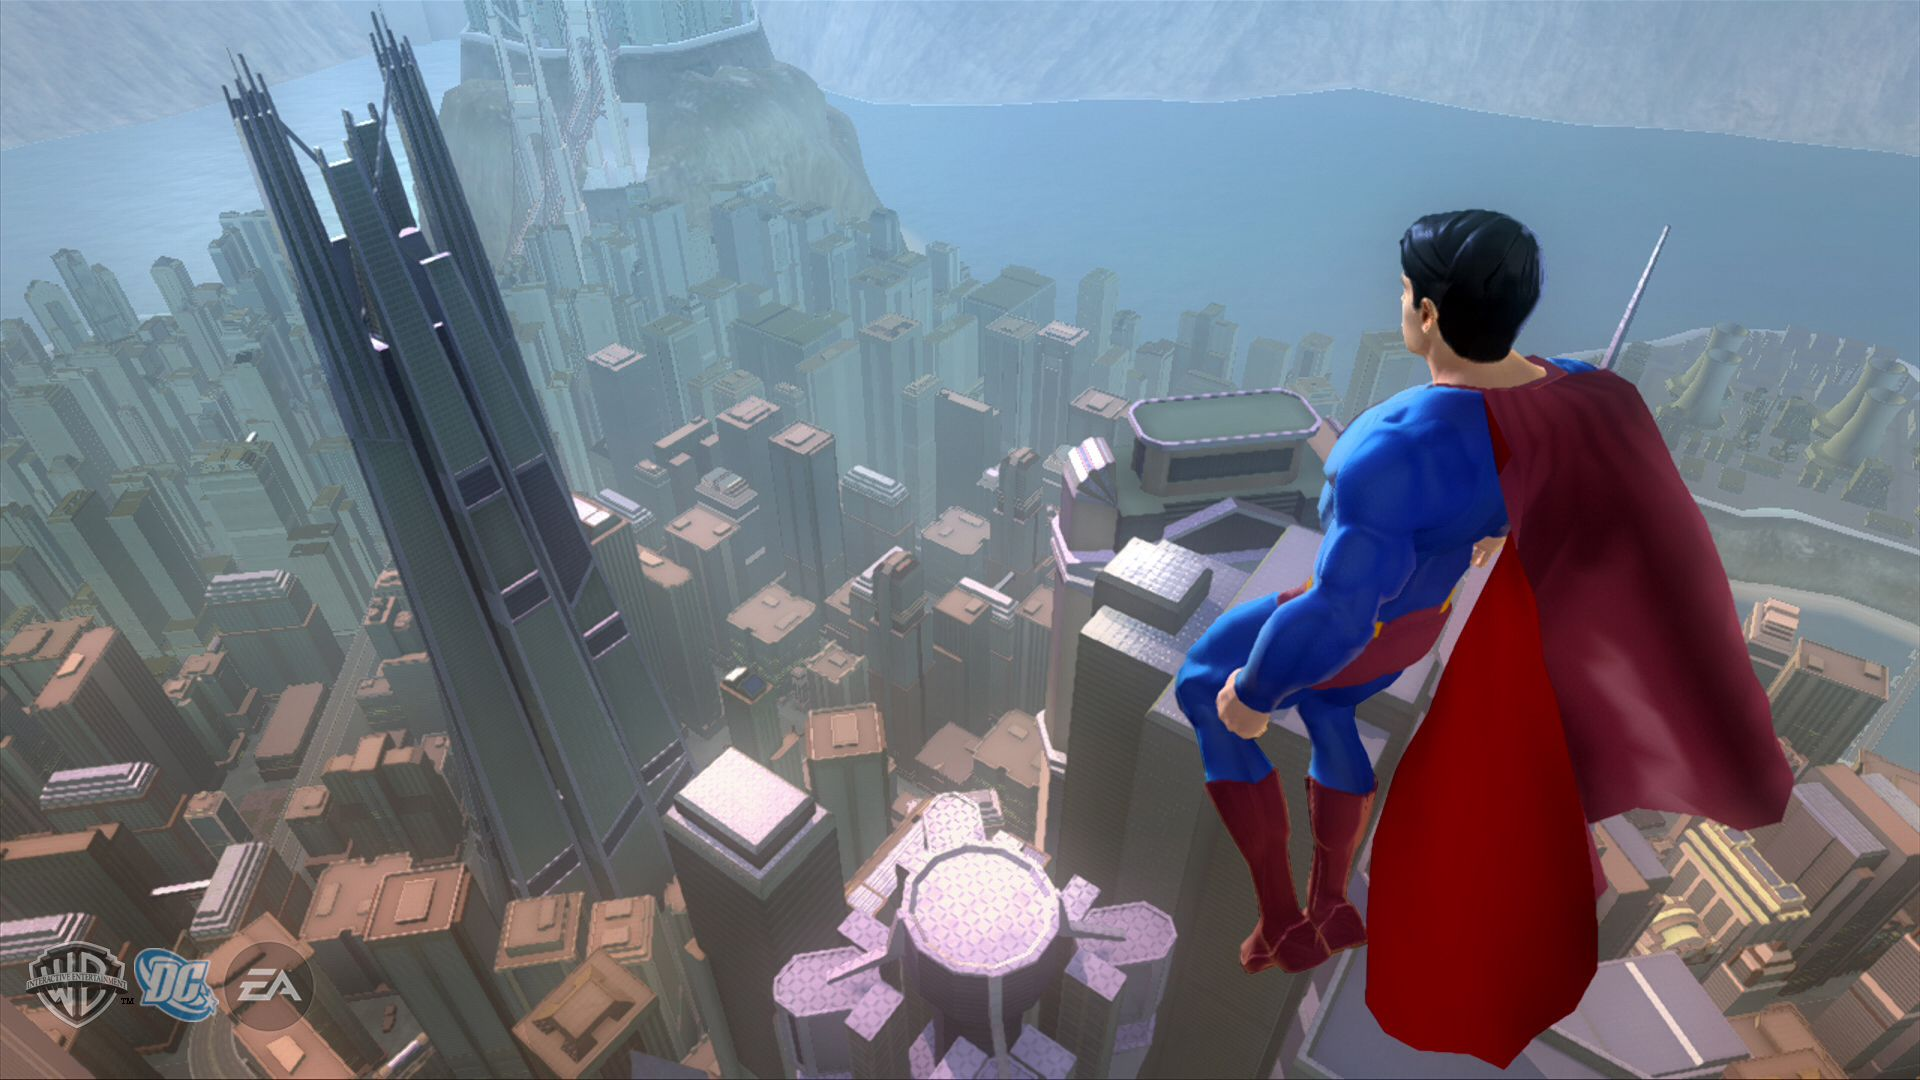 Superman Returns (I worked on this one.) Superman games